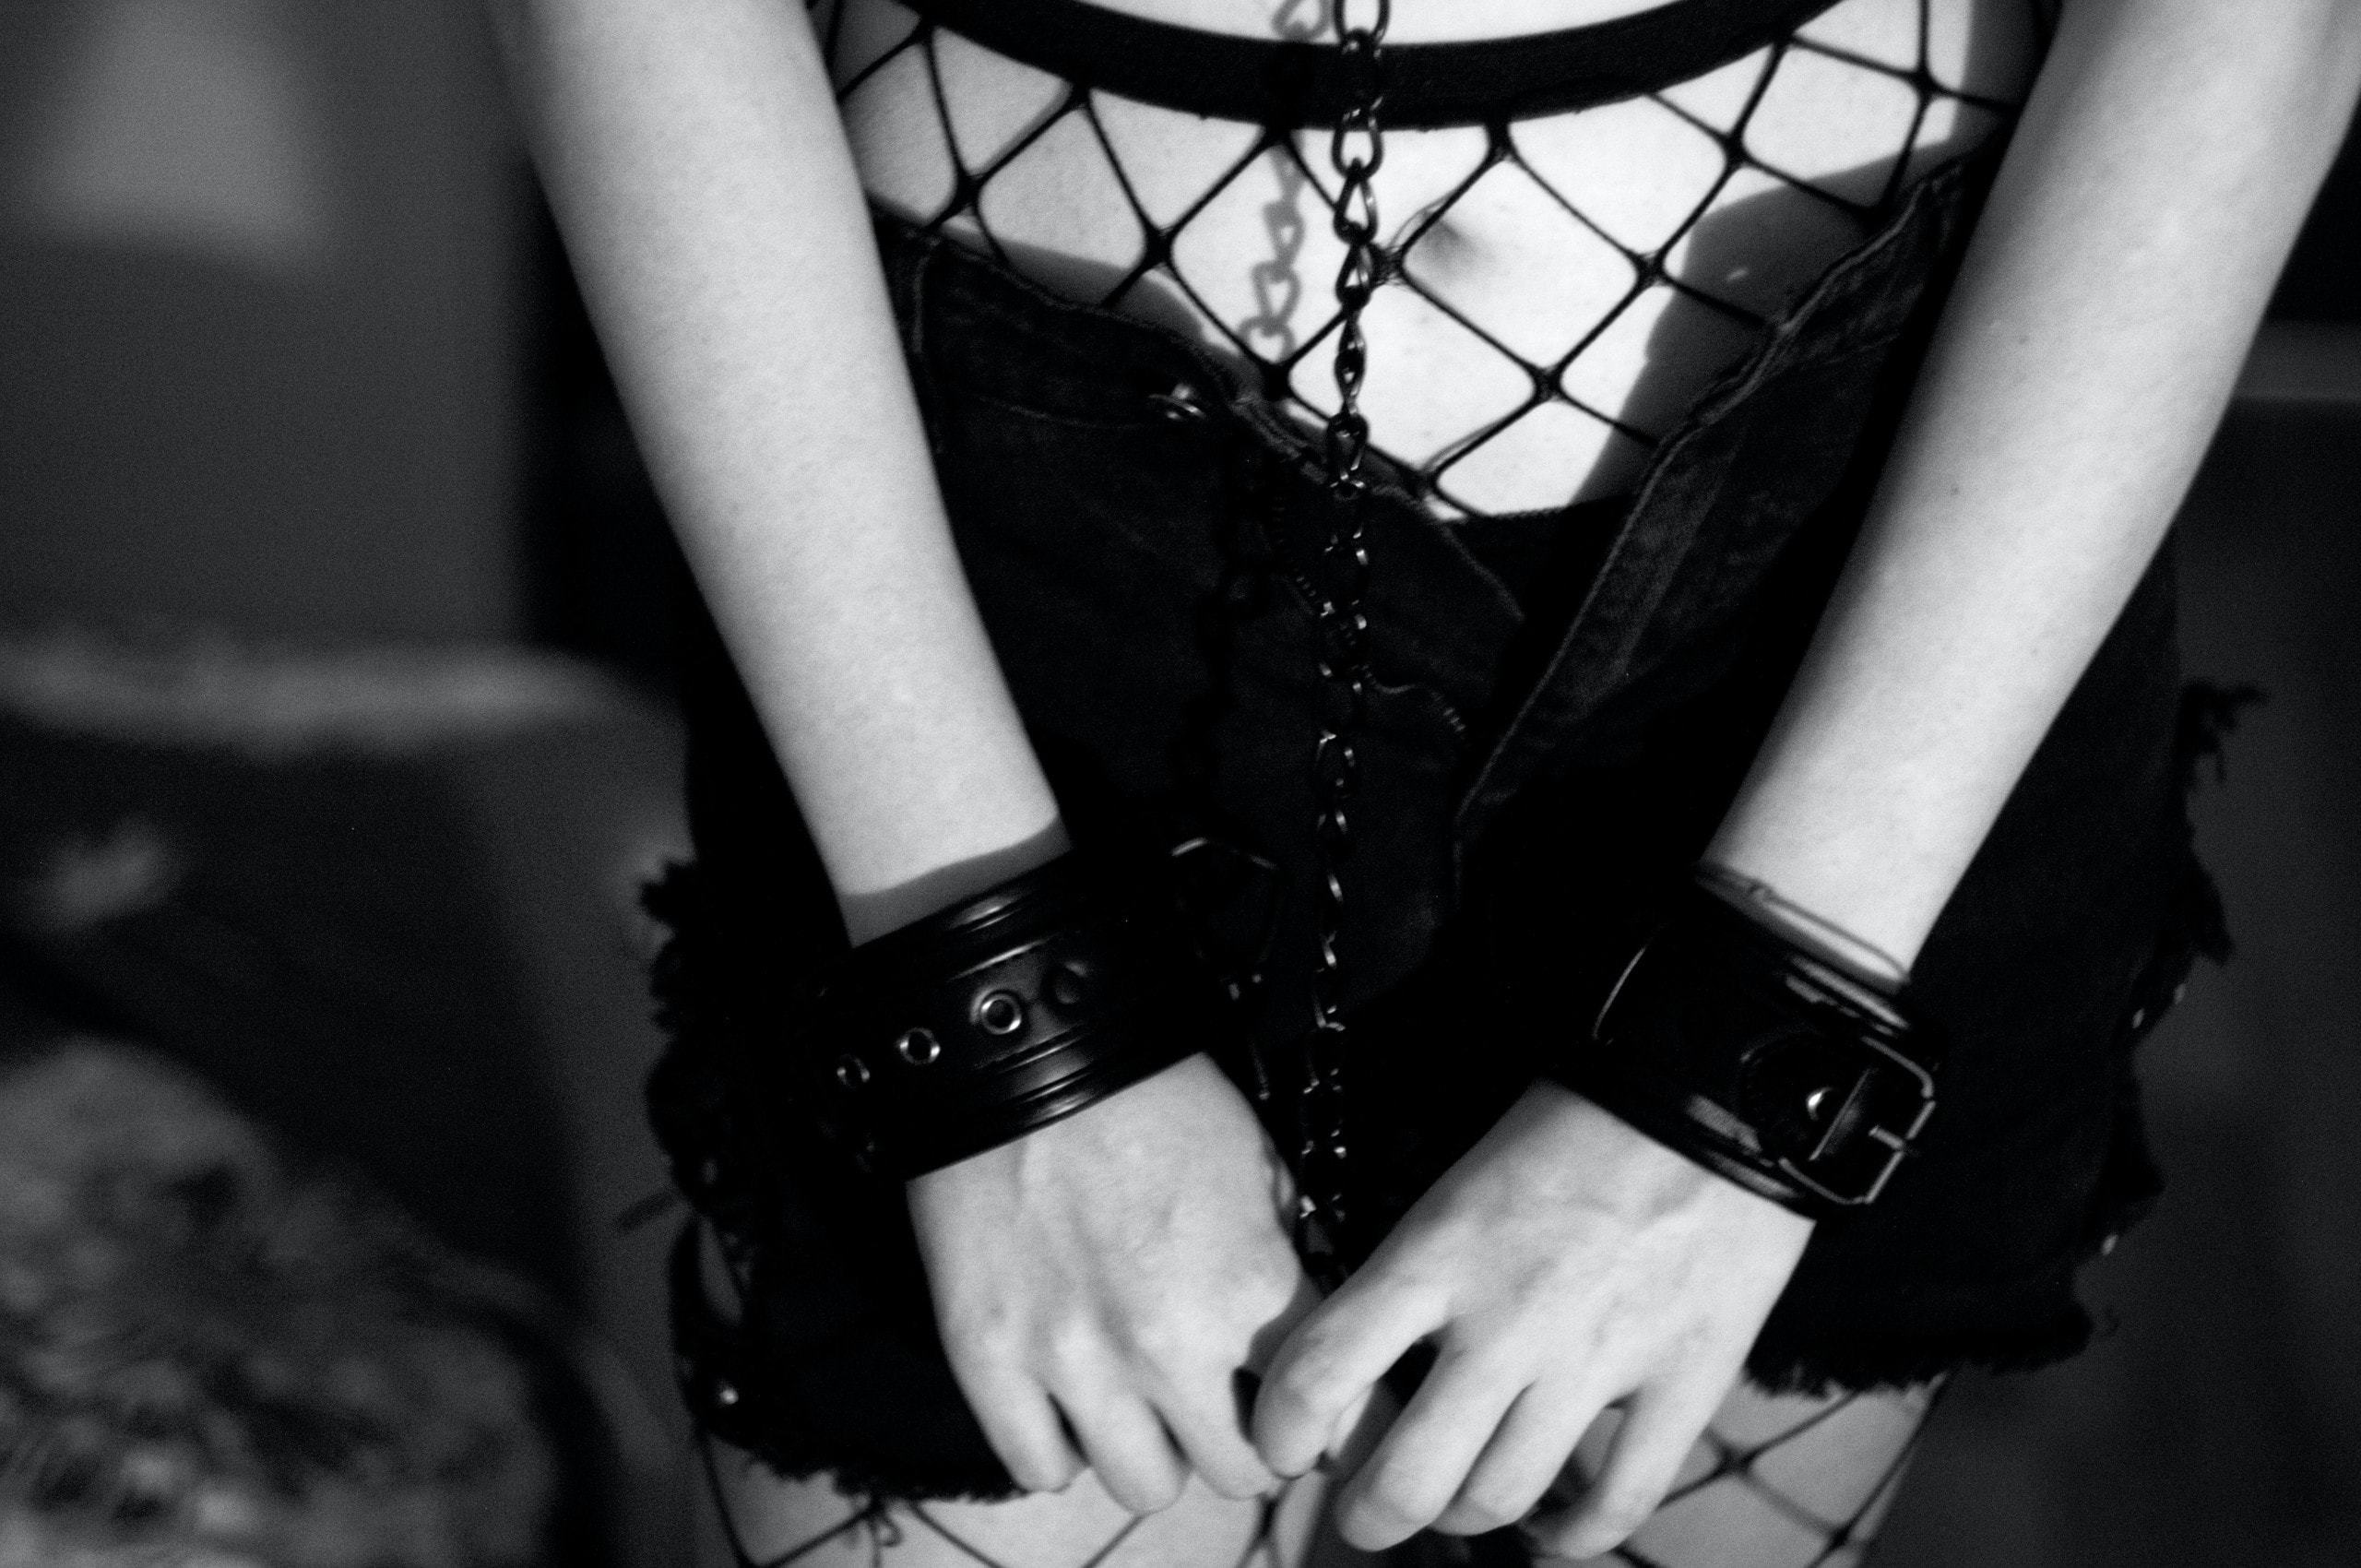 Can Spirituality and BDSM Exist Together?